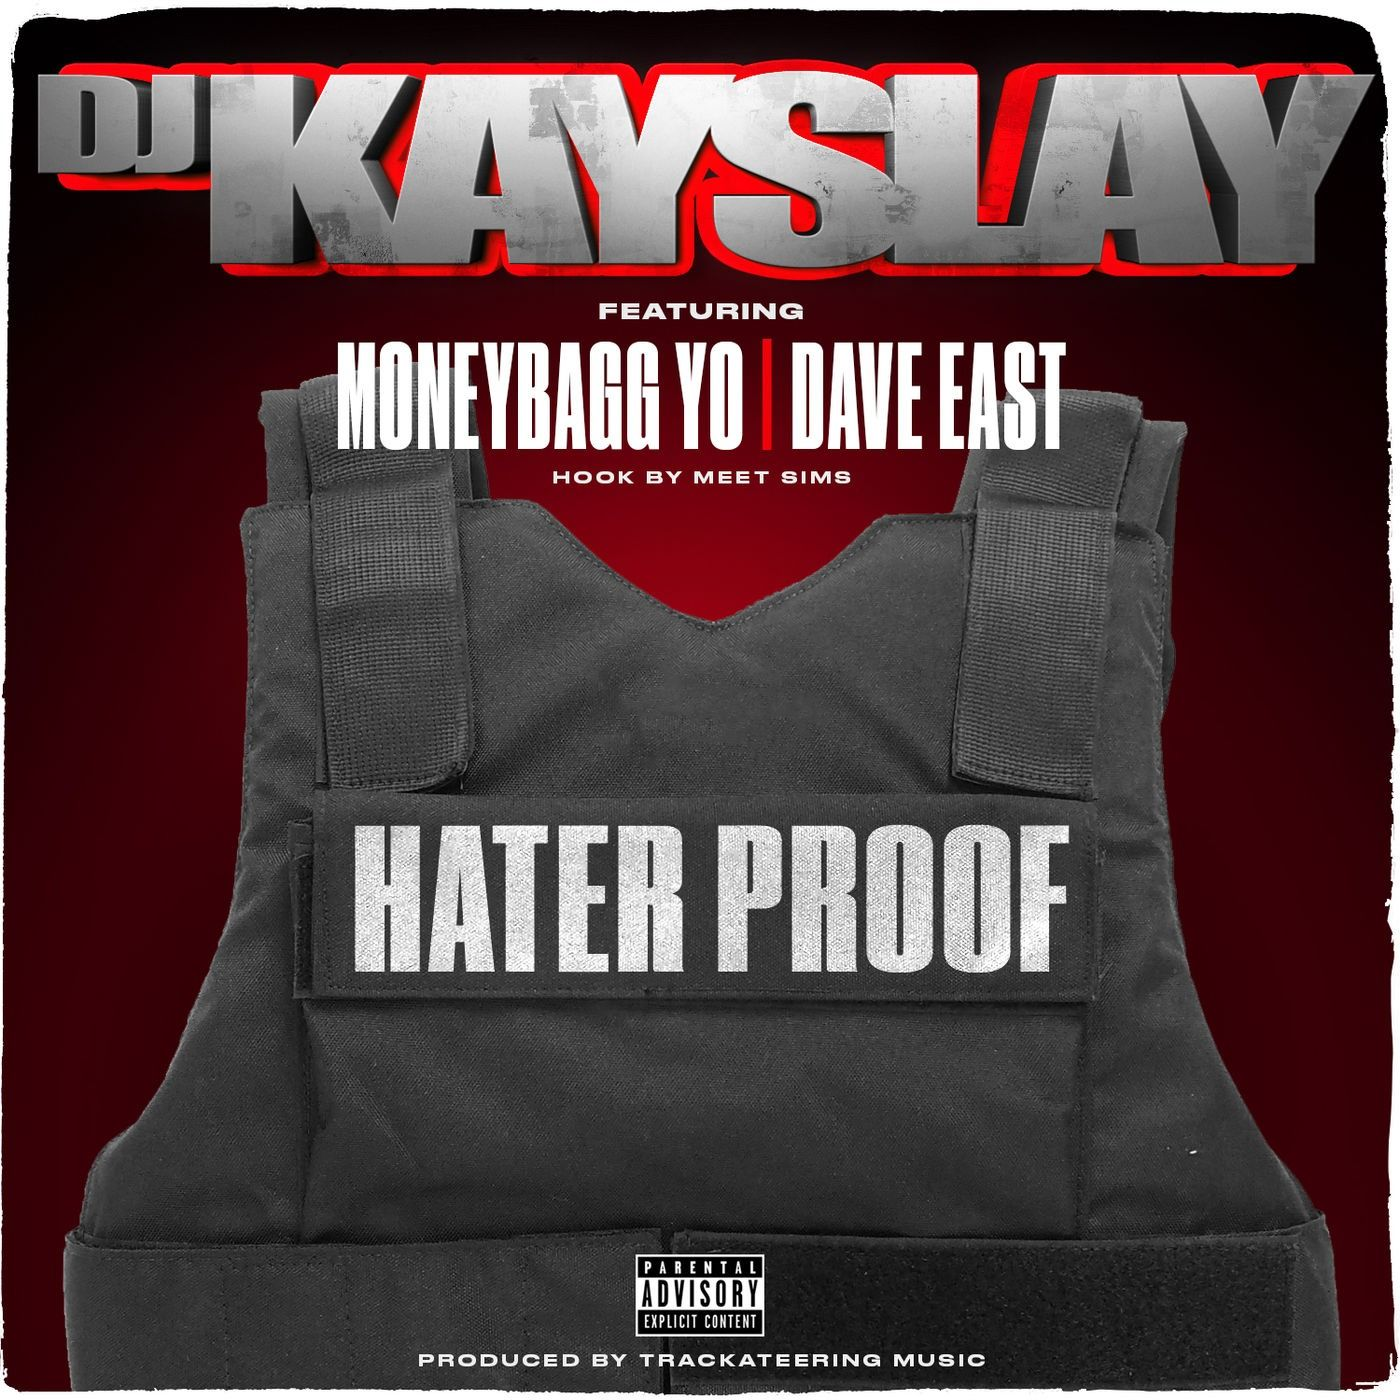 New Single DJ Kay Slay (With images) Dave east, New